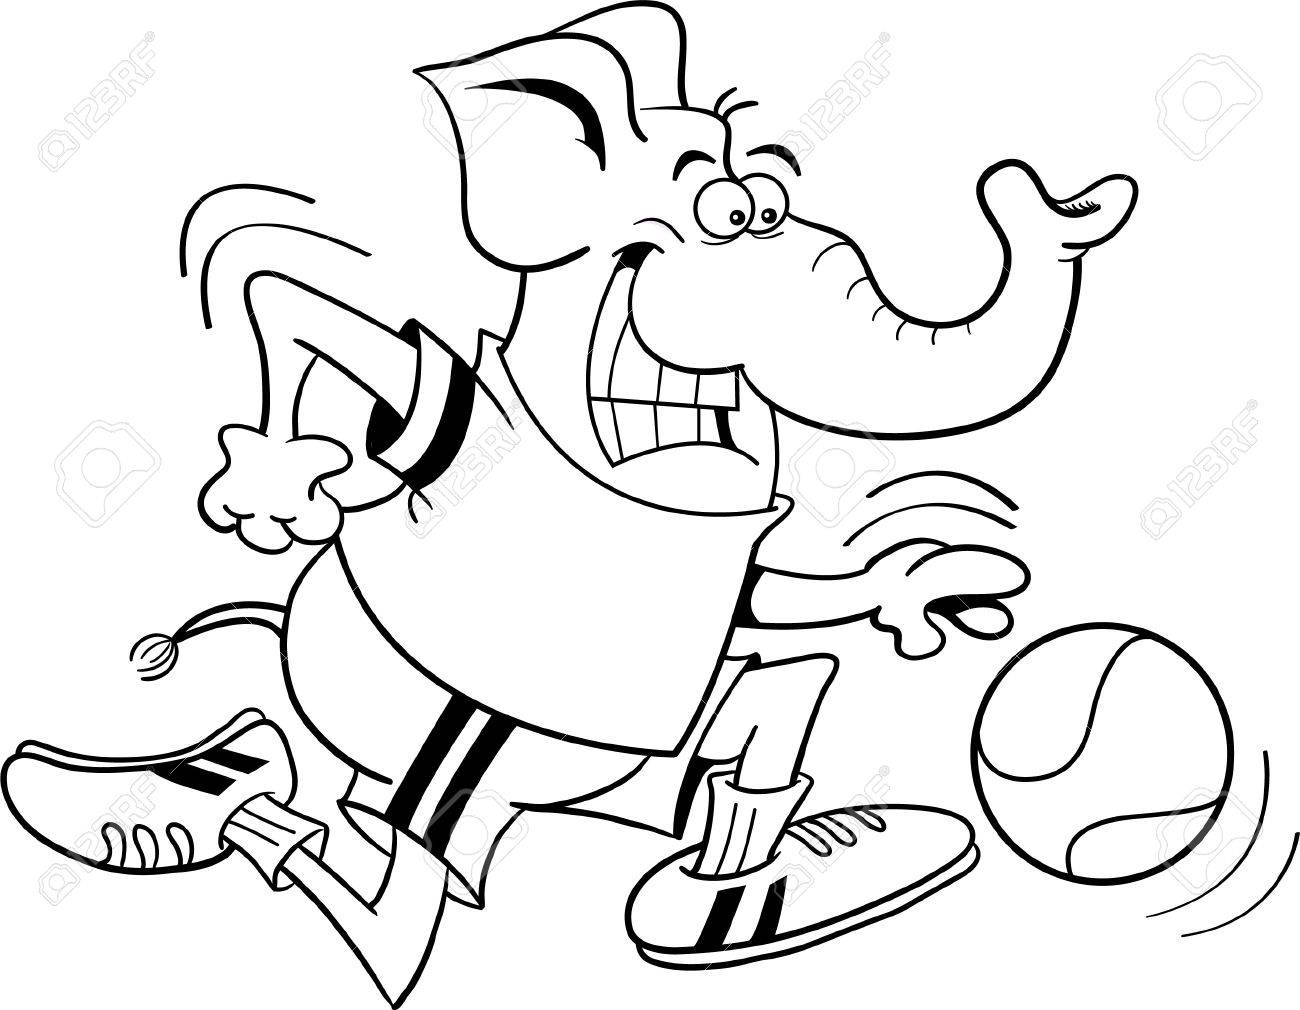 black and white illustration of an elephant playing basketball